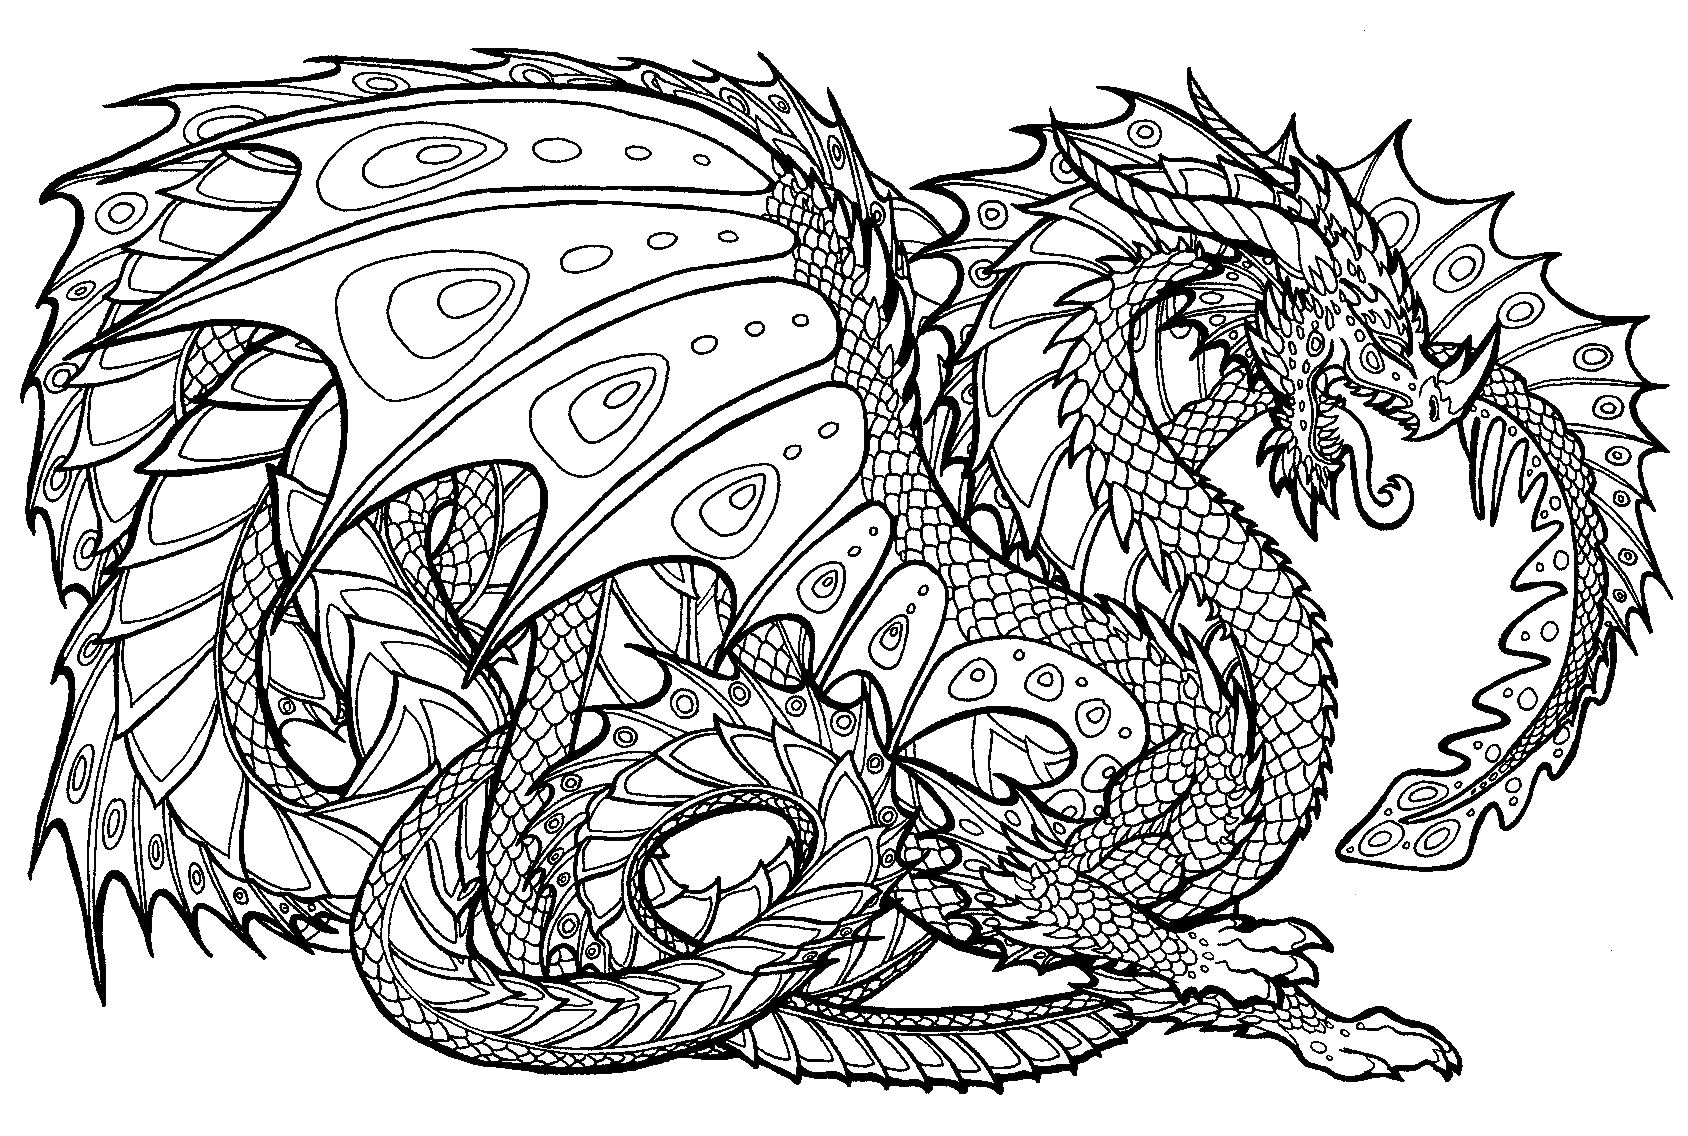 dragon coloring pages coloring pages for adults difficult dragons at getdrawings pages coloring dragon